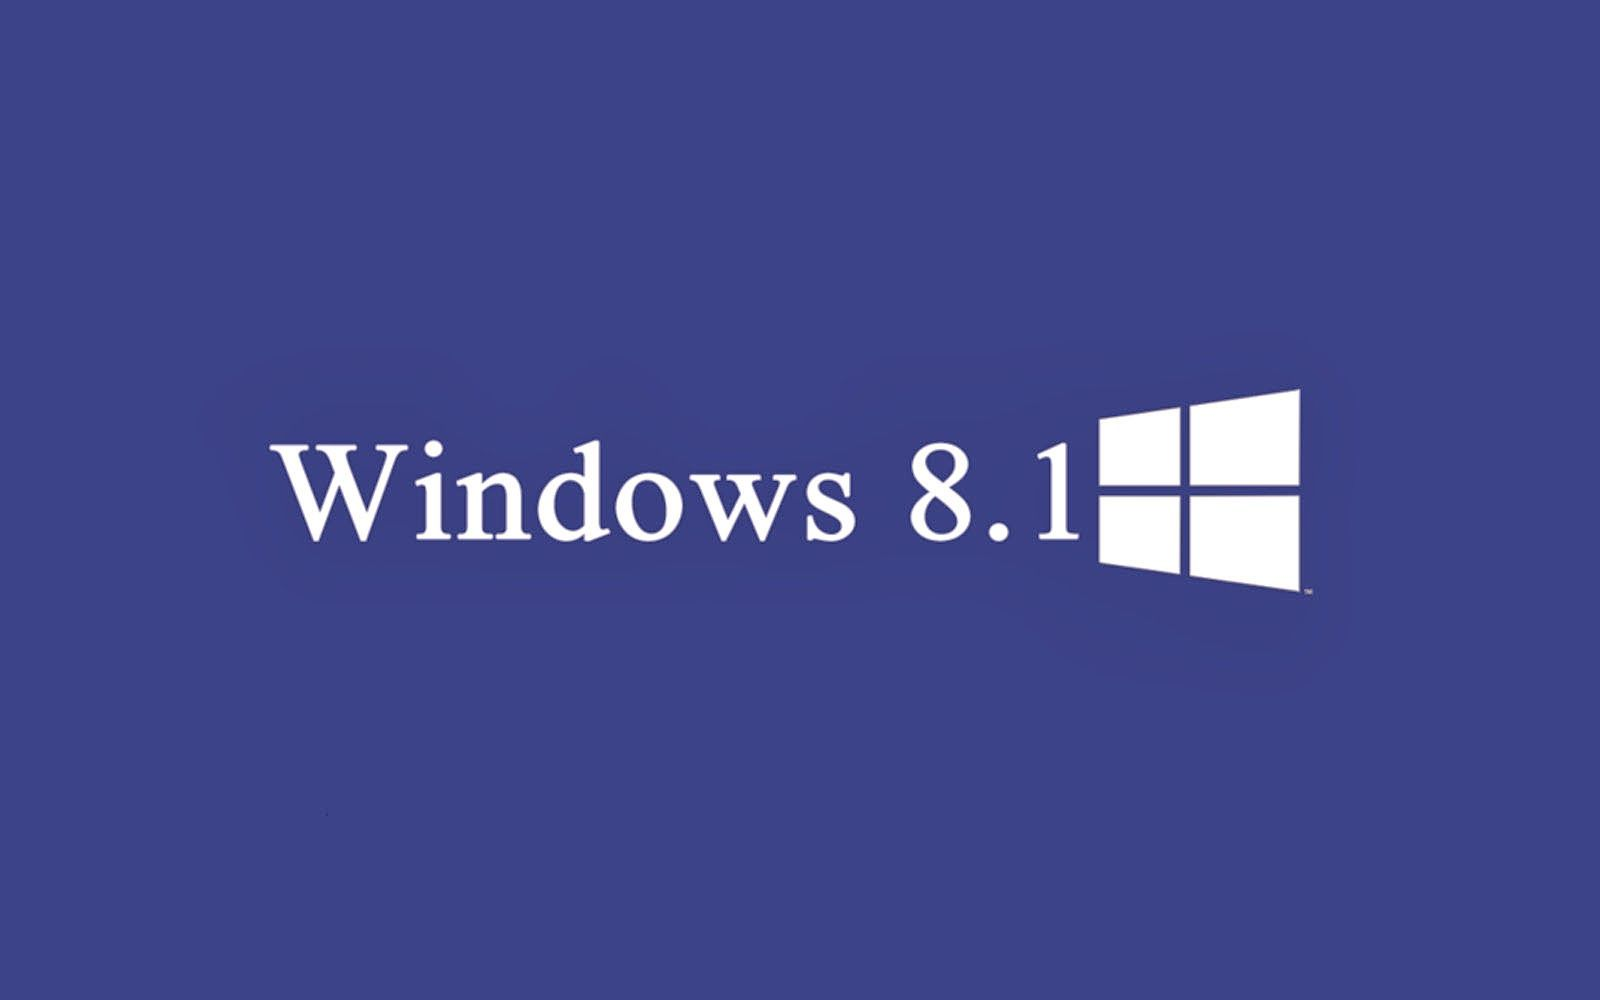 1600x1000 Windows 8.1 Wallpapers, Pictures, Images